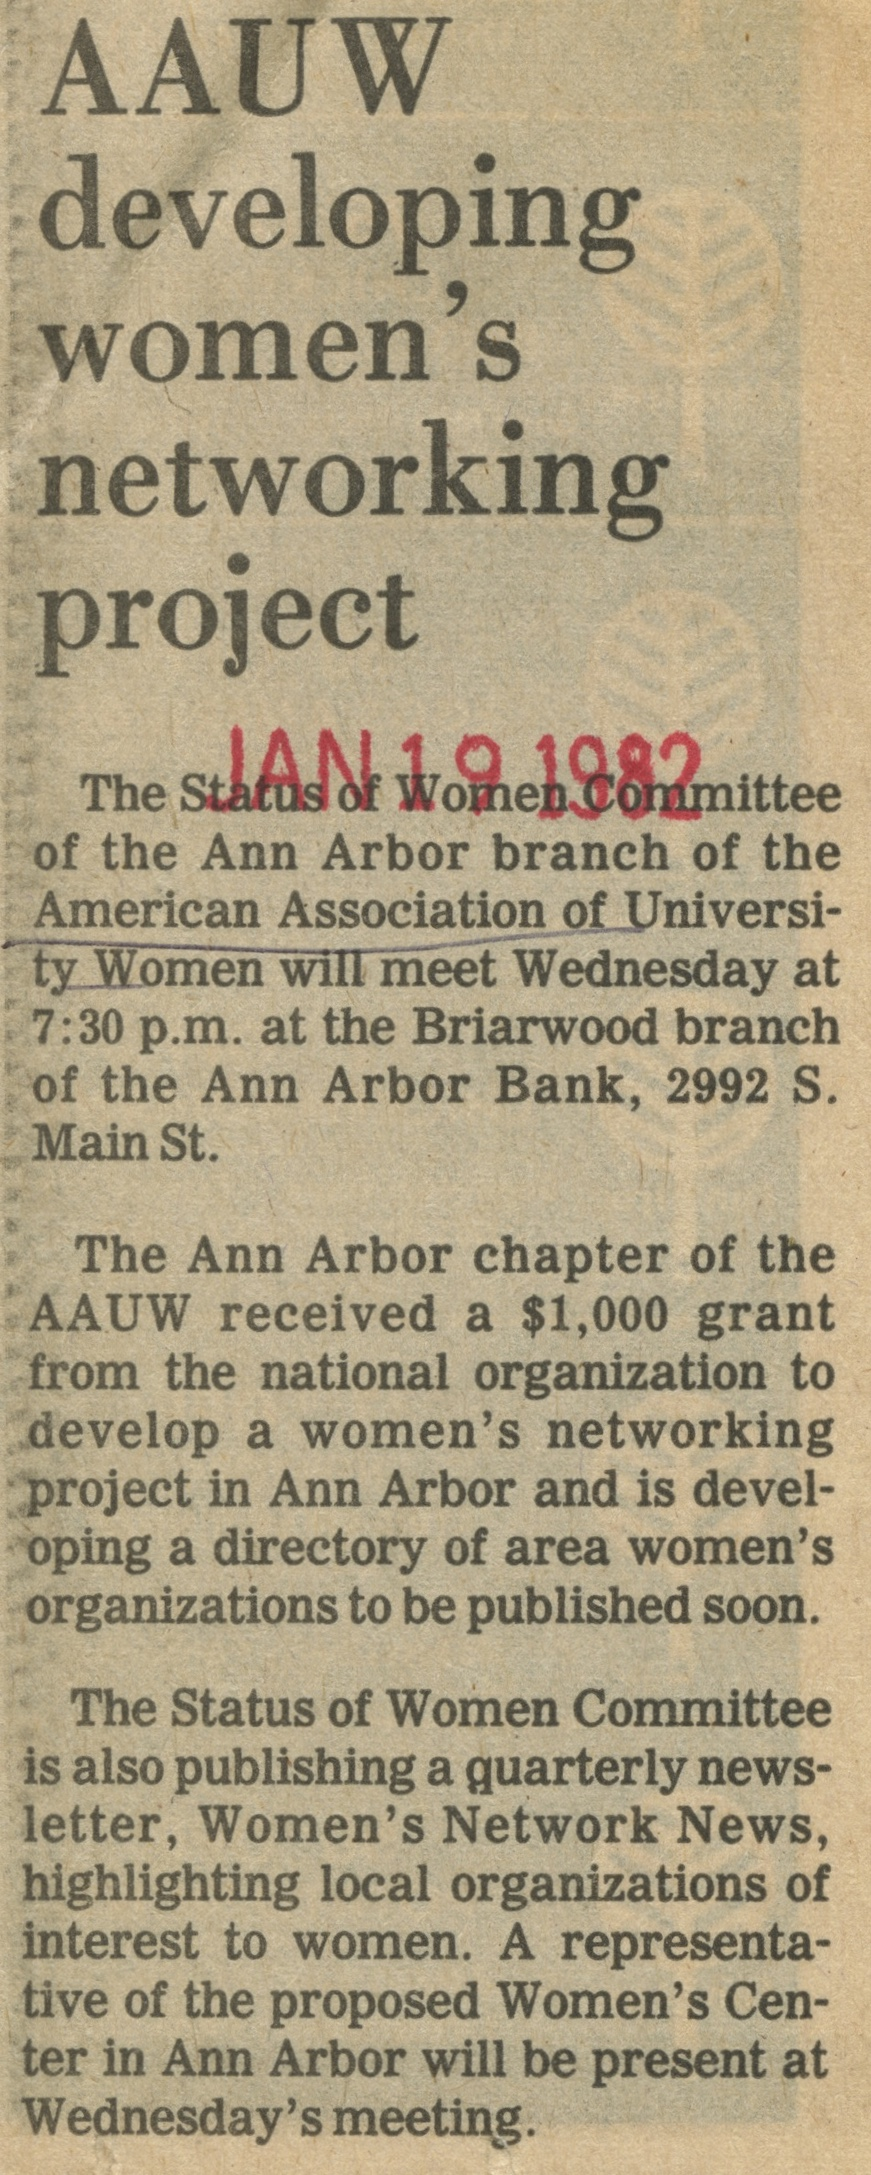 AAUW Developing Women's Networking Project image